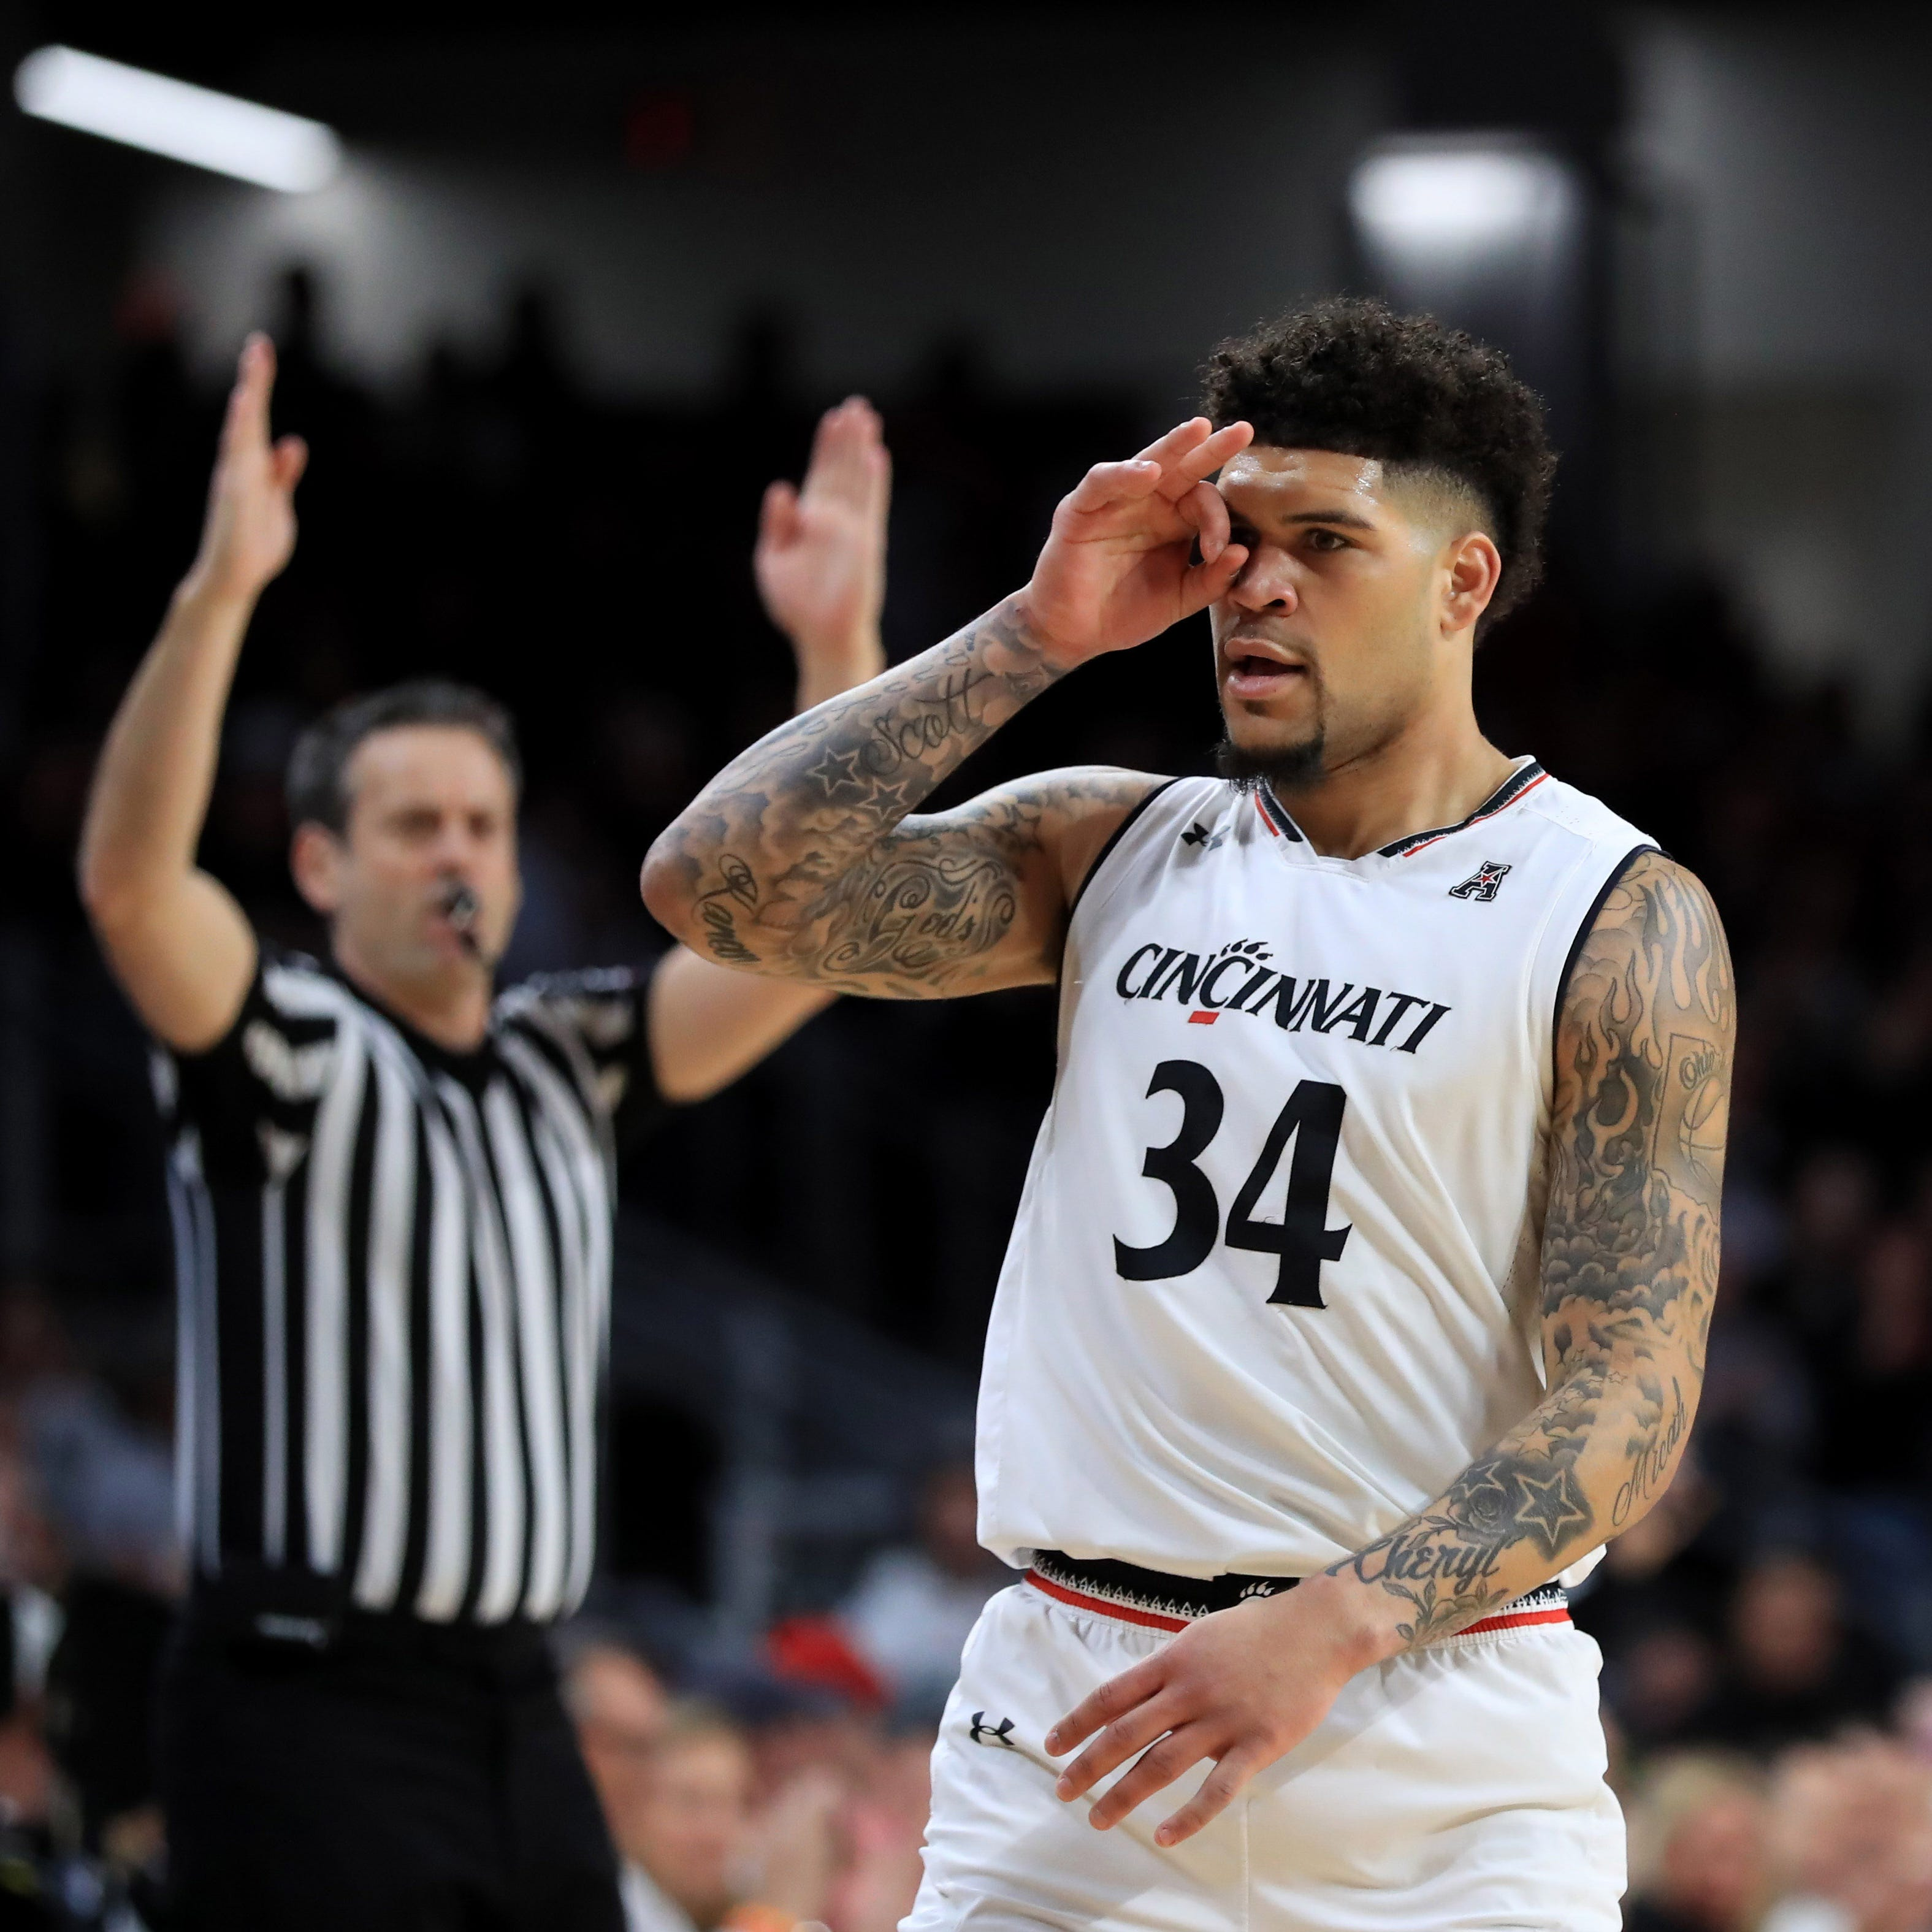 CBS Bracketology forecasts possible Cincinnati Bearcats vs. Kentucky Wildcats NCAA Tournament game